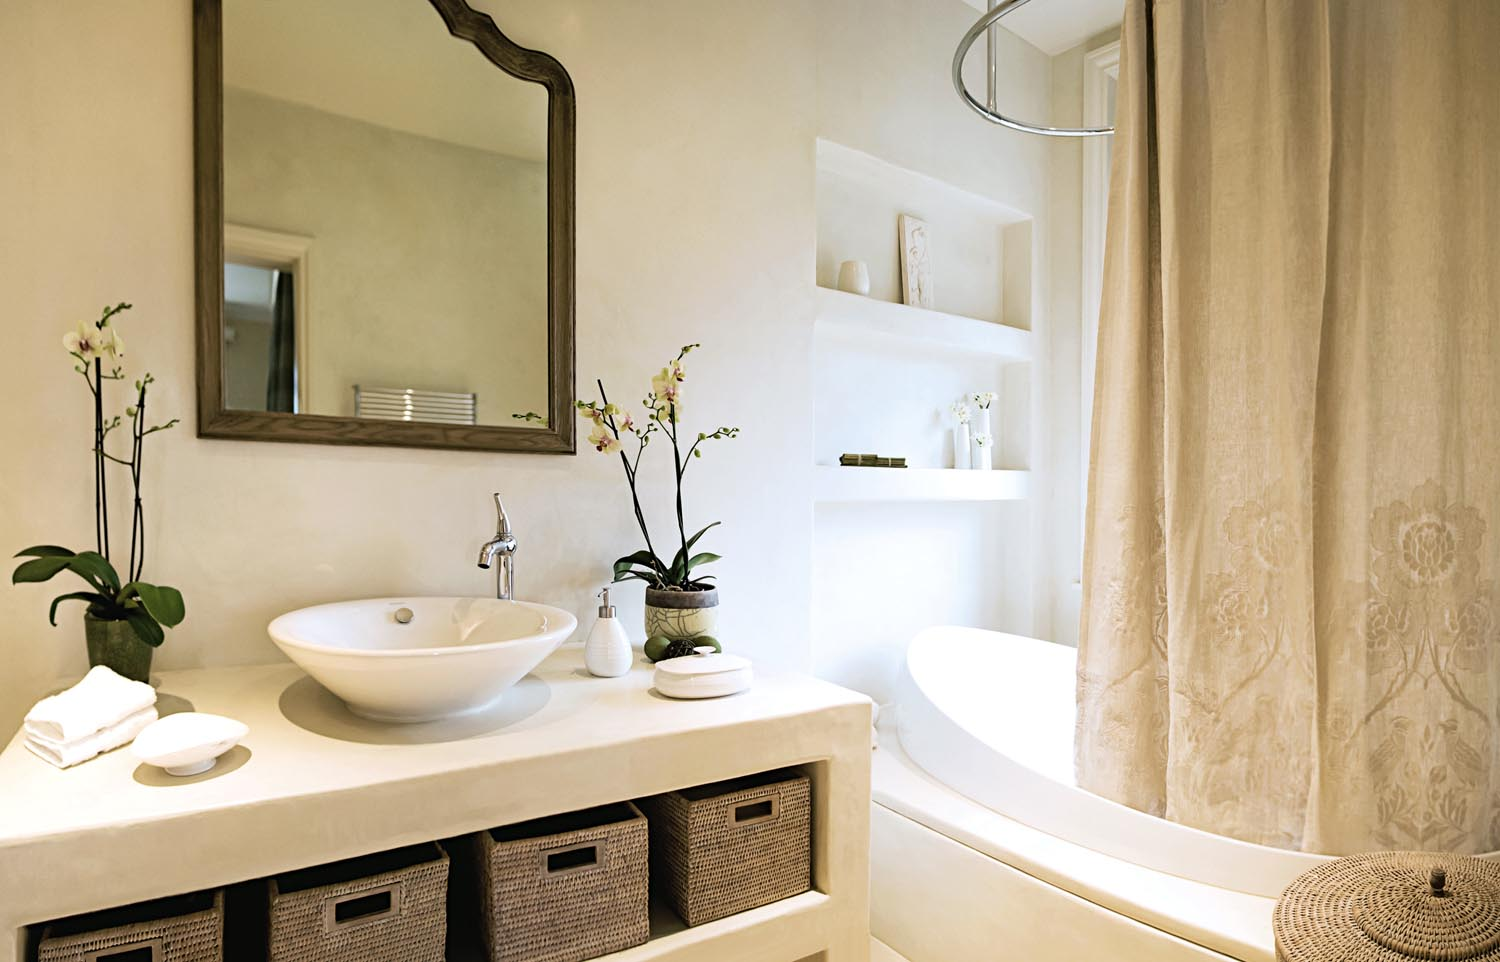 Textural elements such as the storage  baskets add interest to a simple bathroom